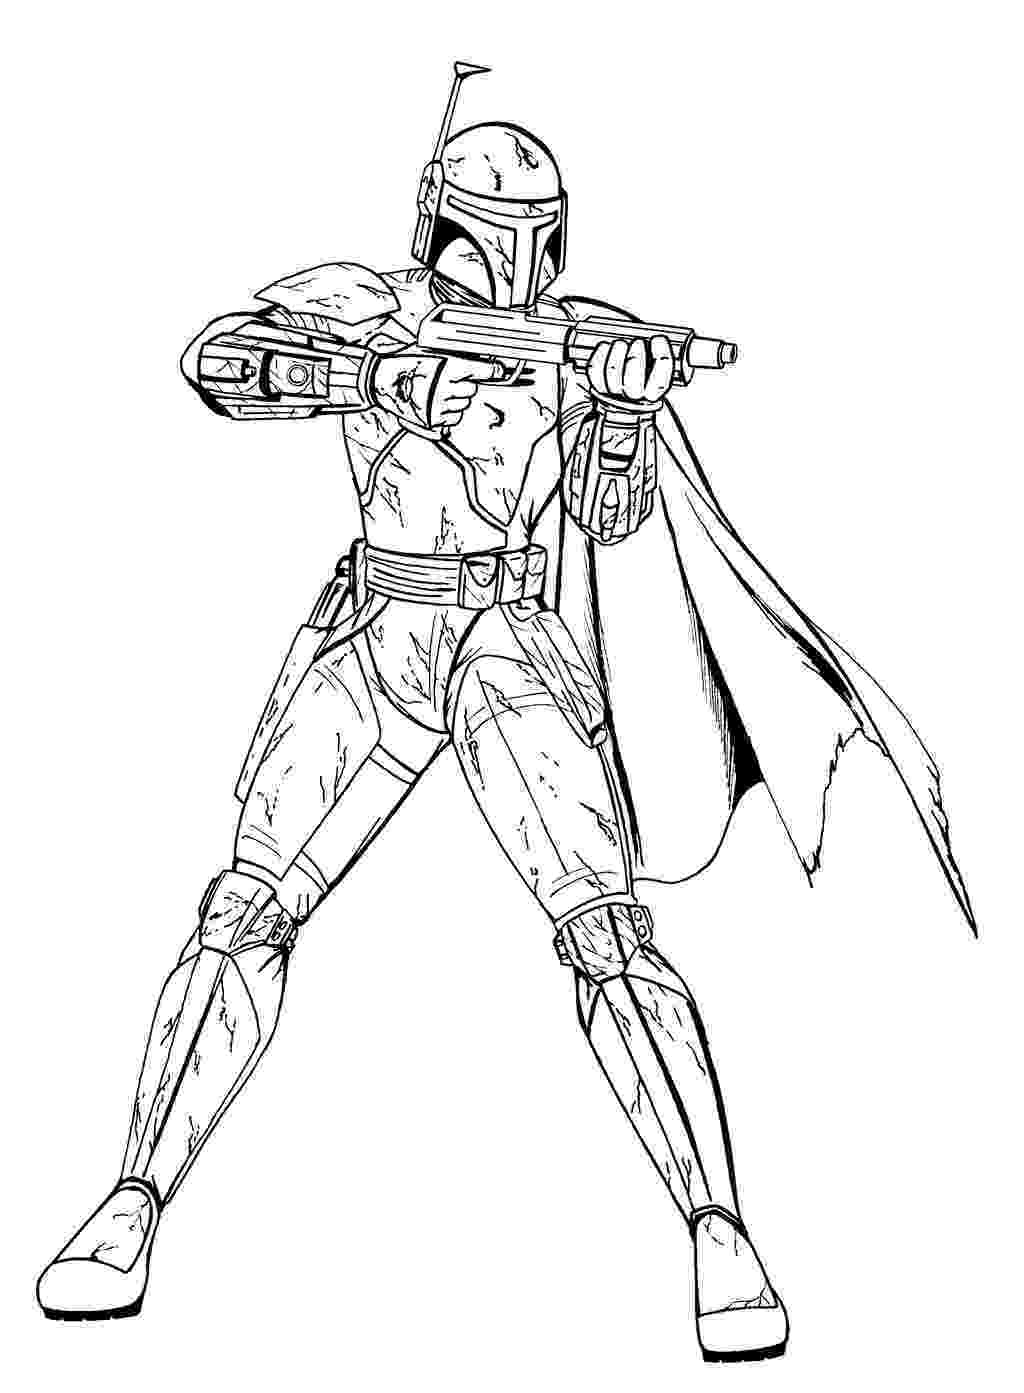 boba fett coloring page star wars coloring pages 2018 dr odd coloring boba fett page